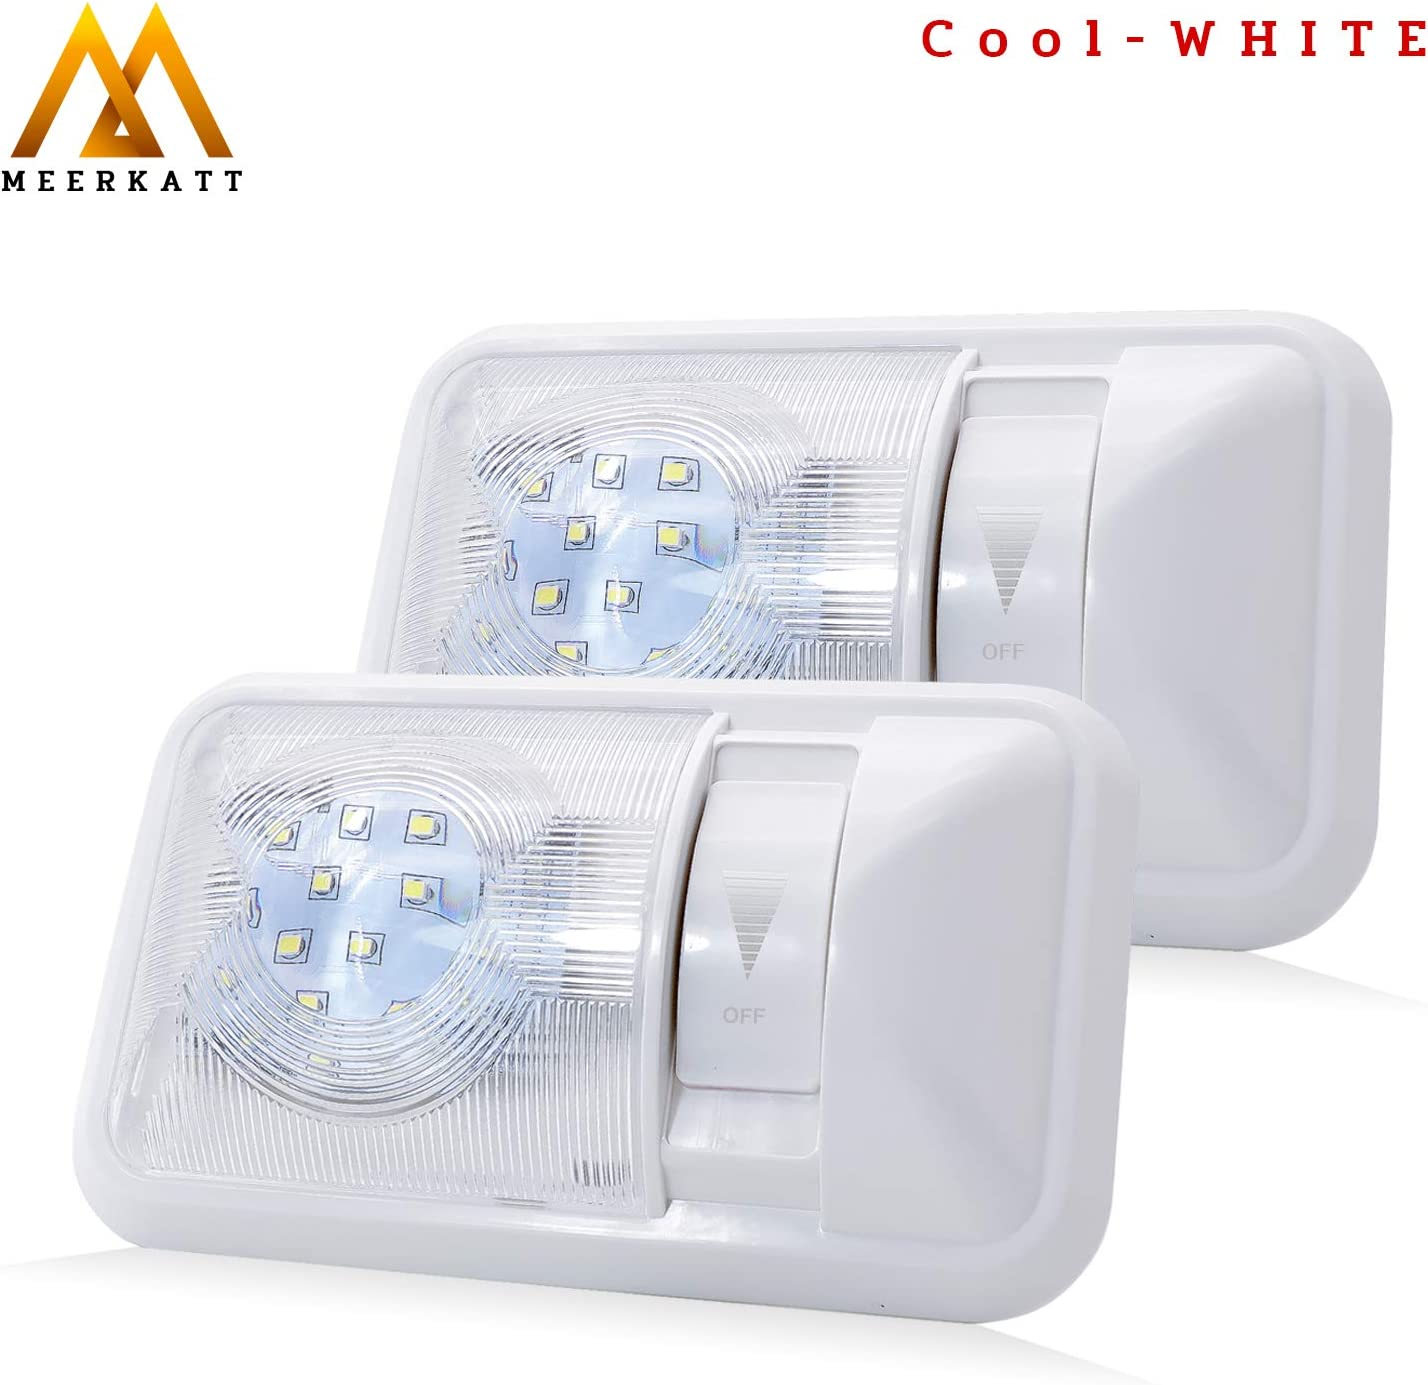 Pack of 1 8.3 Inch Cool White LED Ceiling Single Dome Lights 24X2835 SMD Dimmable with Switch Interior Lamp for Boat Cabin Trailer RV Camper Van Caravan Lorry DC 12V 6000-6500K Fixture TDT Meerkatt